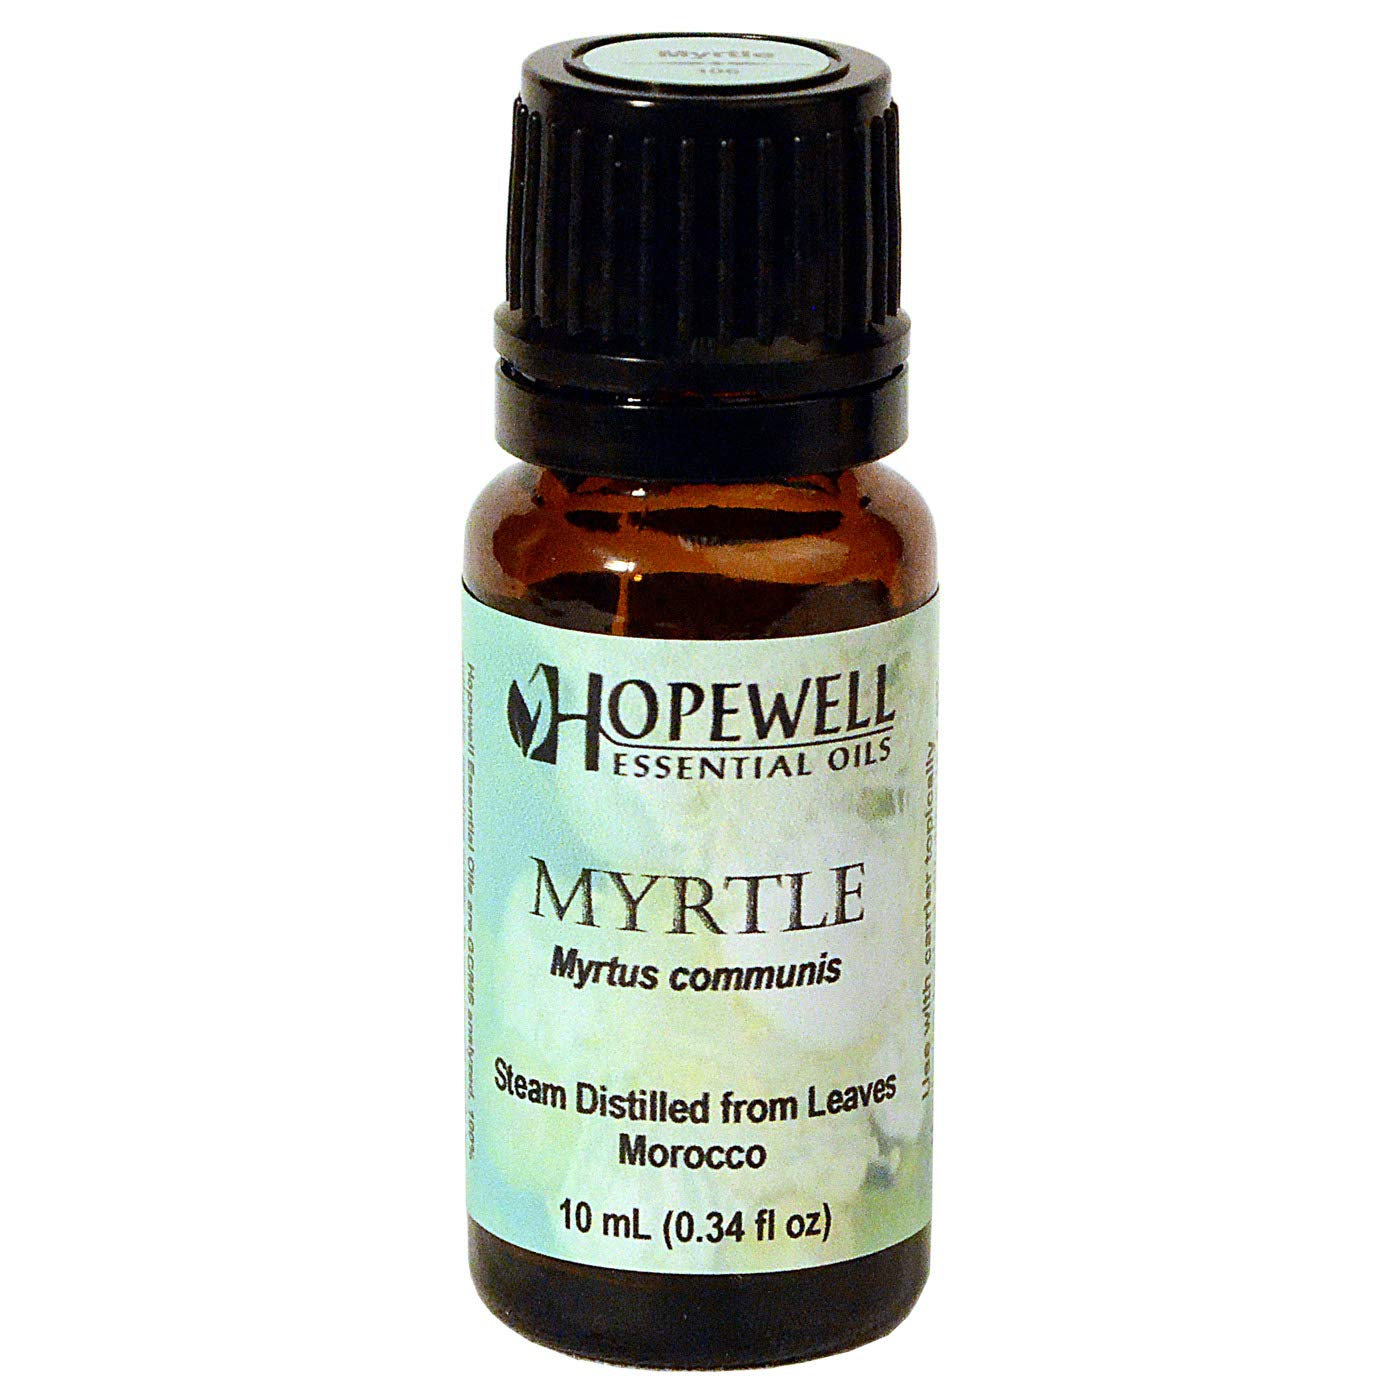 Myrtle Essential Oil, 100% Pure, Undiluted, Top Therapeutic Quality - 10ml by Hopewell Essential Oils